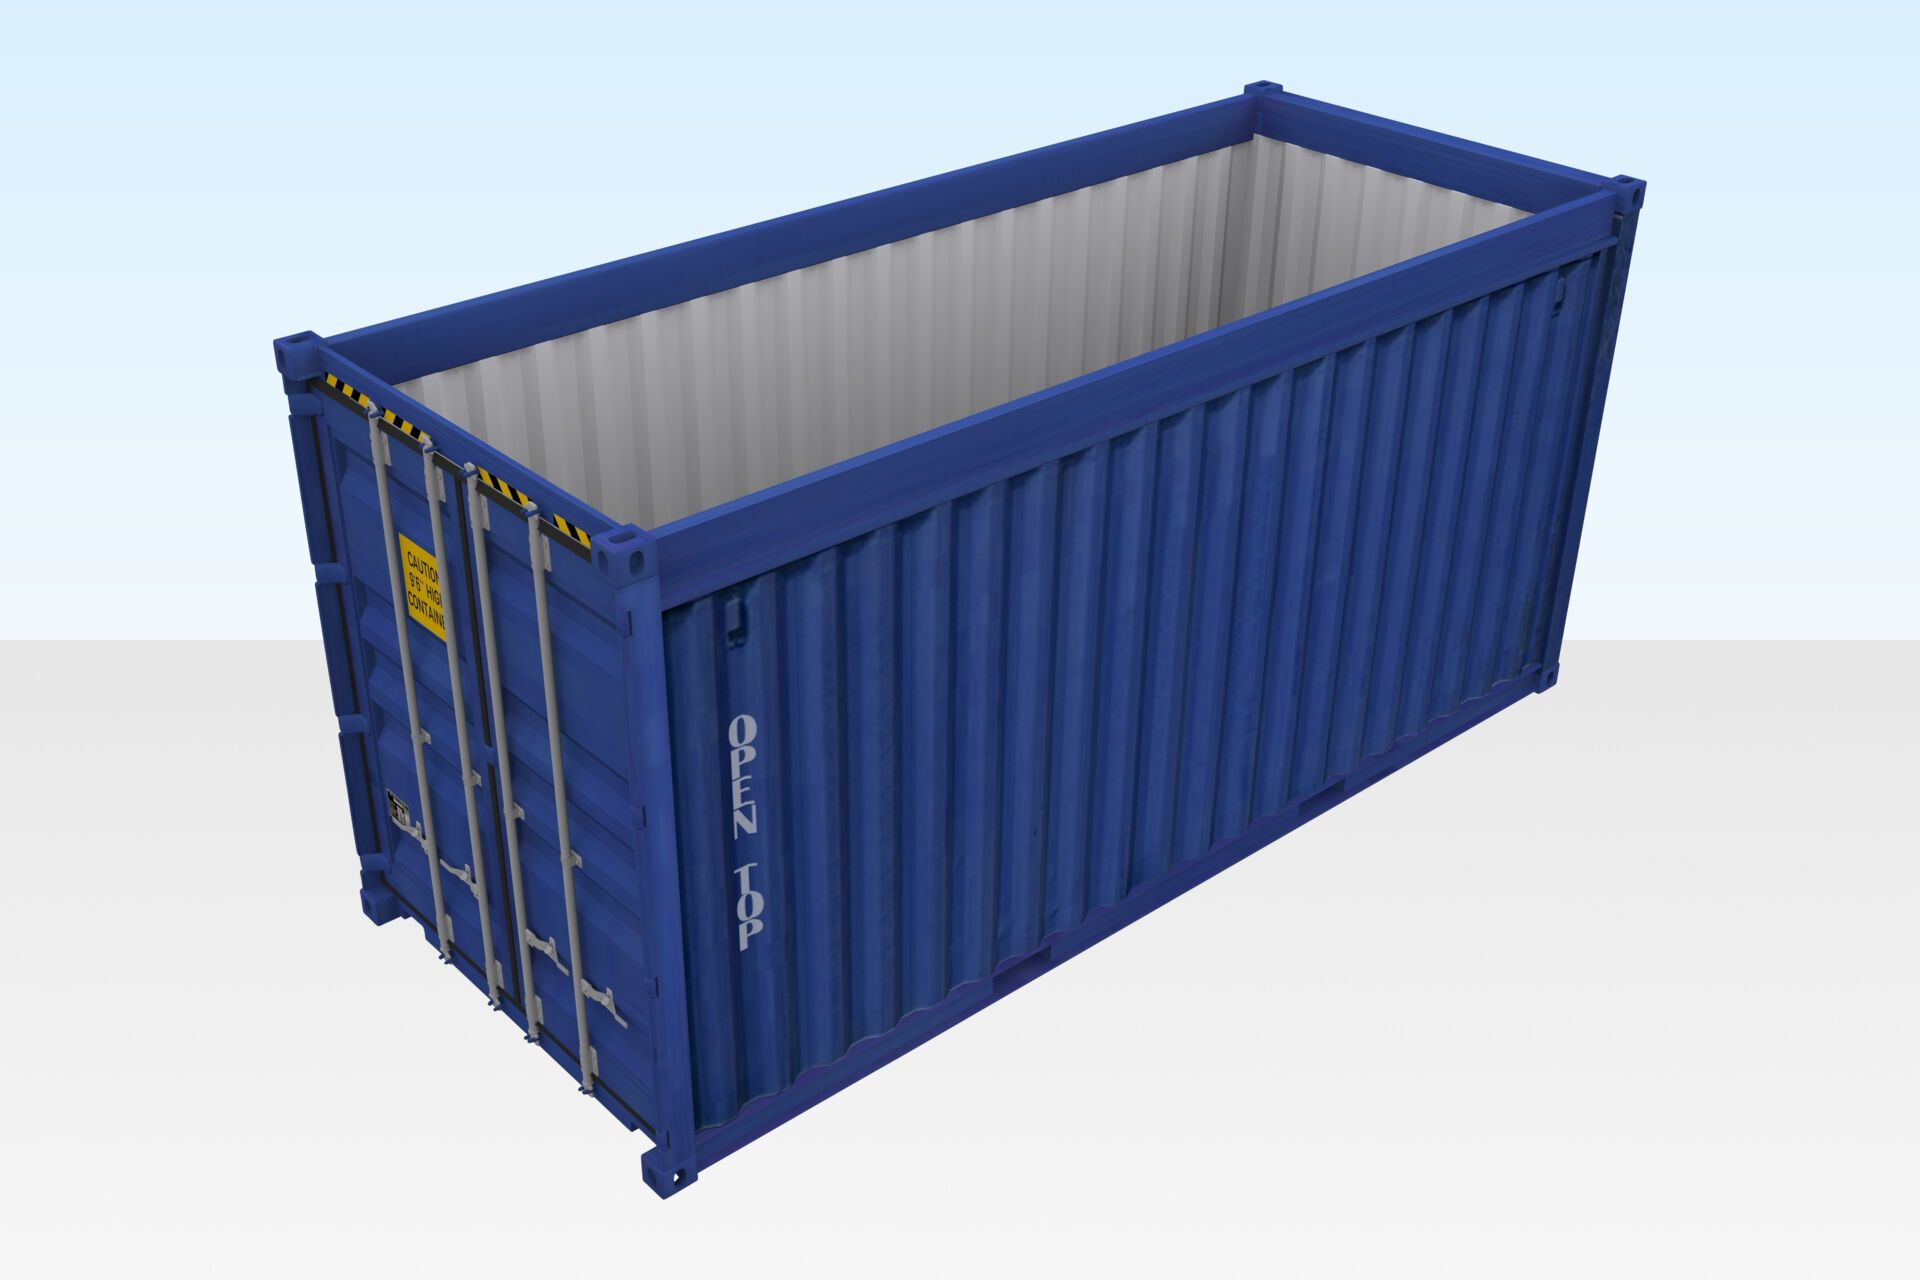 20ft Used Open Top Shipping Containers For Sale Open Top C Shipping Containers For Sale Containers For Sale Shipping Container